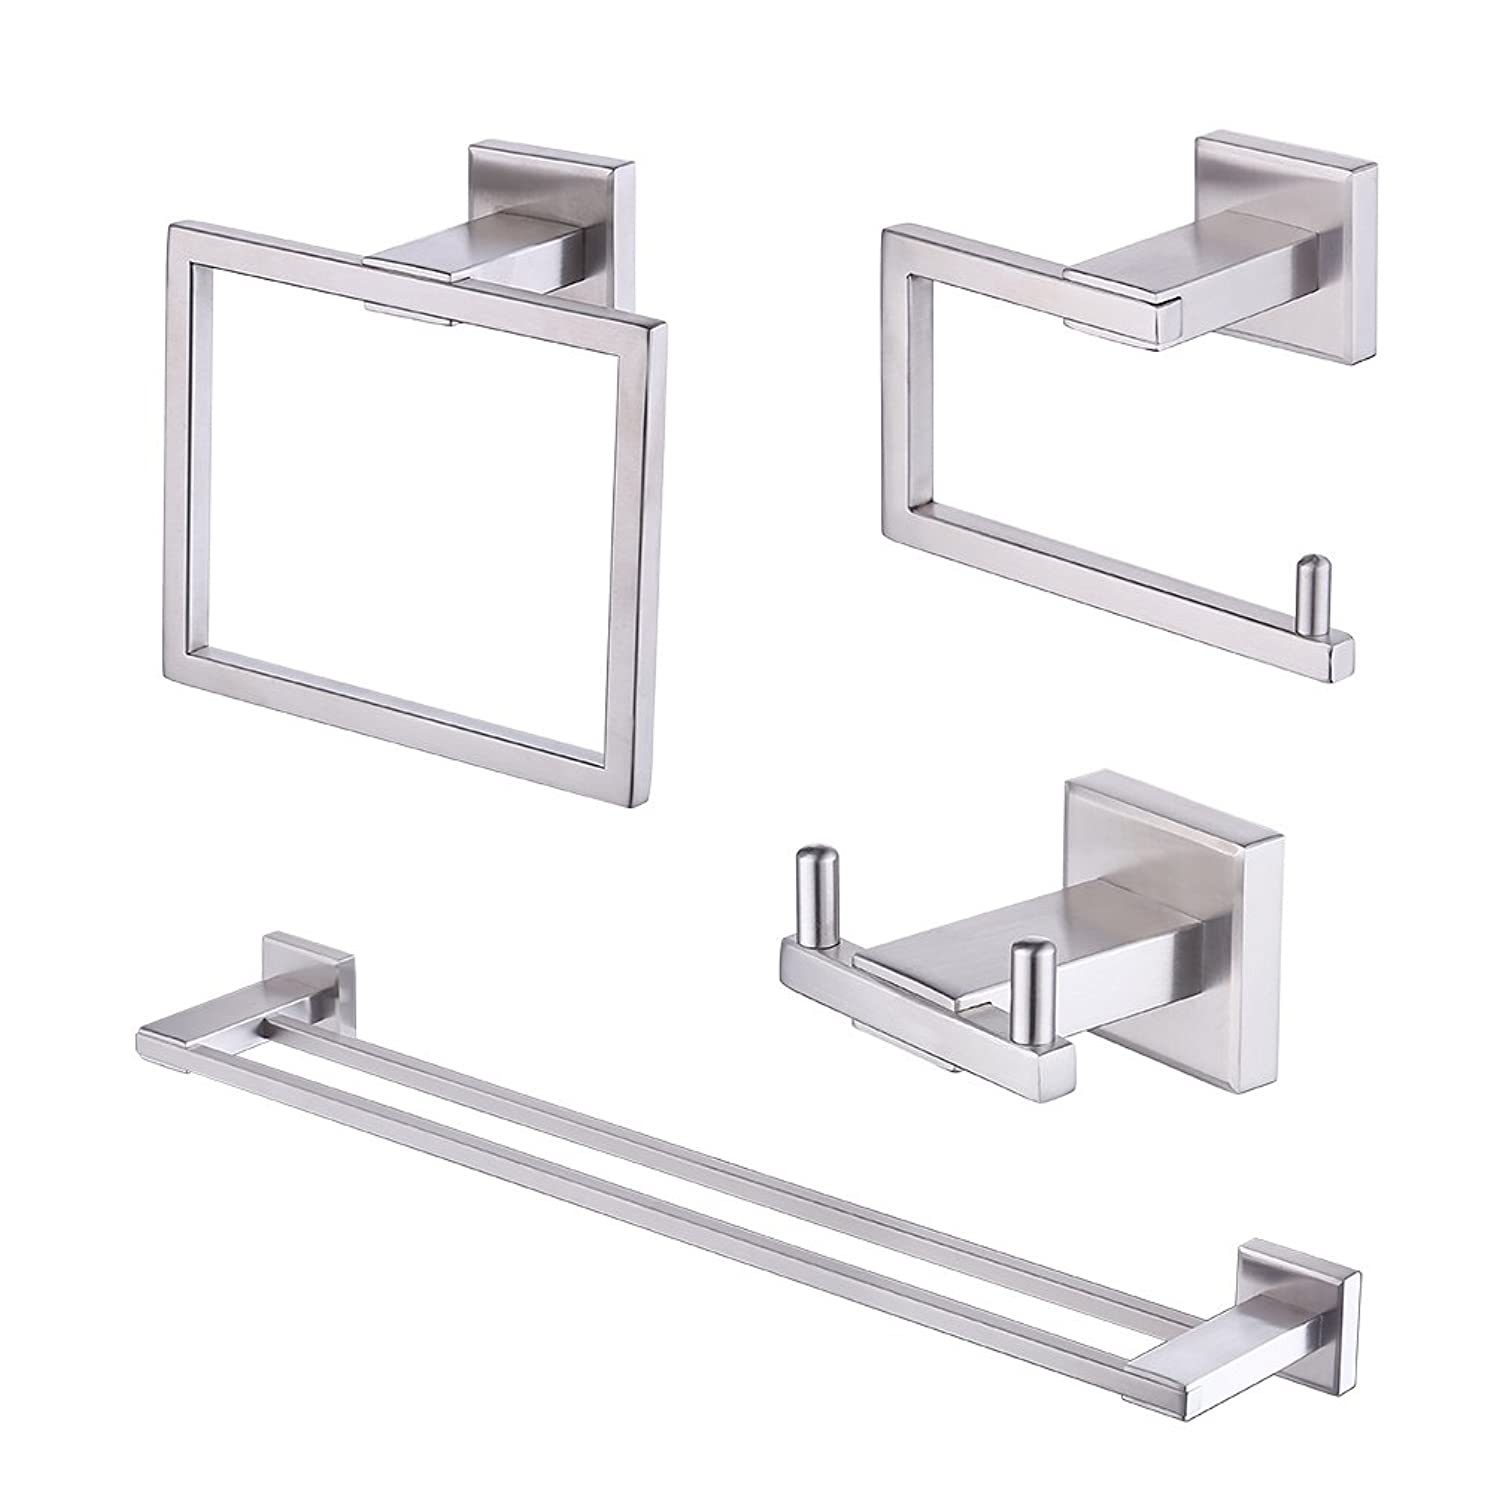 KES 4-Piece Bathroom Accessory Set, Includes Double Towel Bar, Toilet Paper Holder, Towel Ring, Double Robe Hook - SUS 304 Stainless Steel Brushed Finish Wall Mount, LA242-43